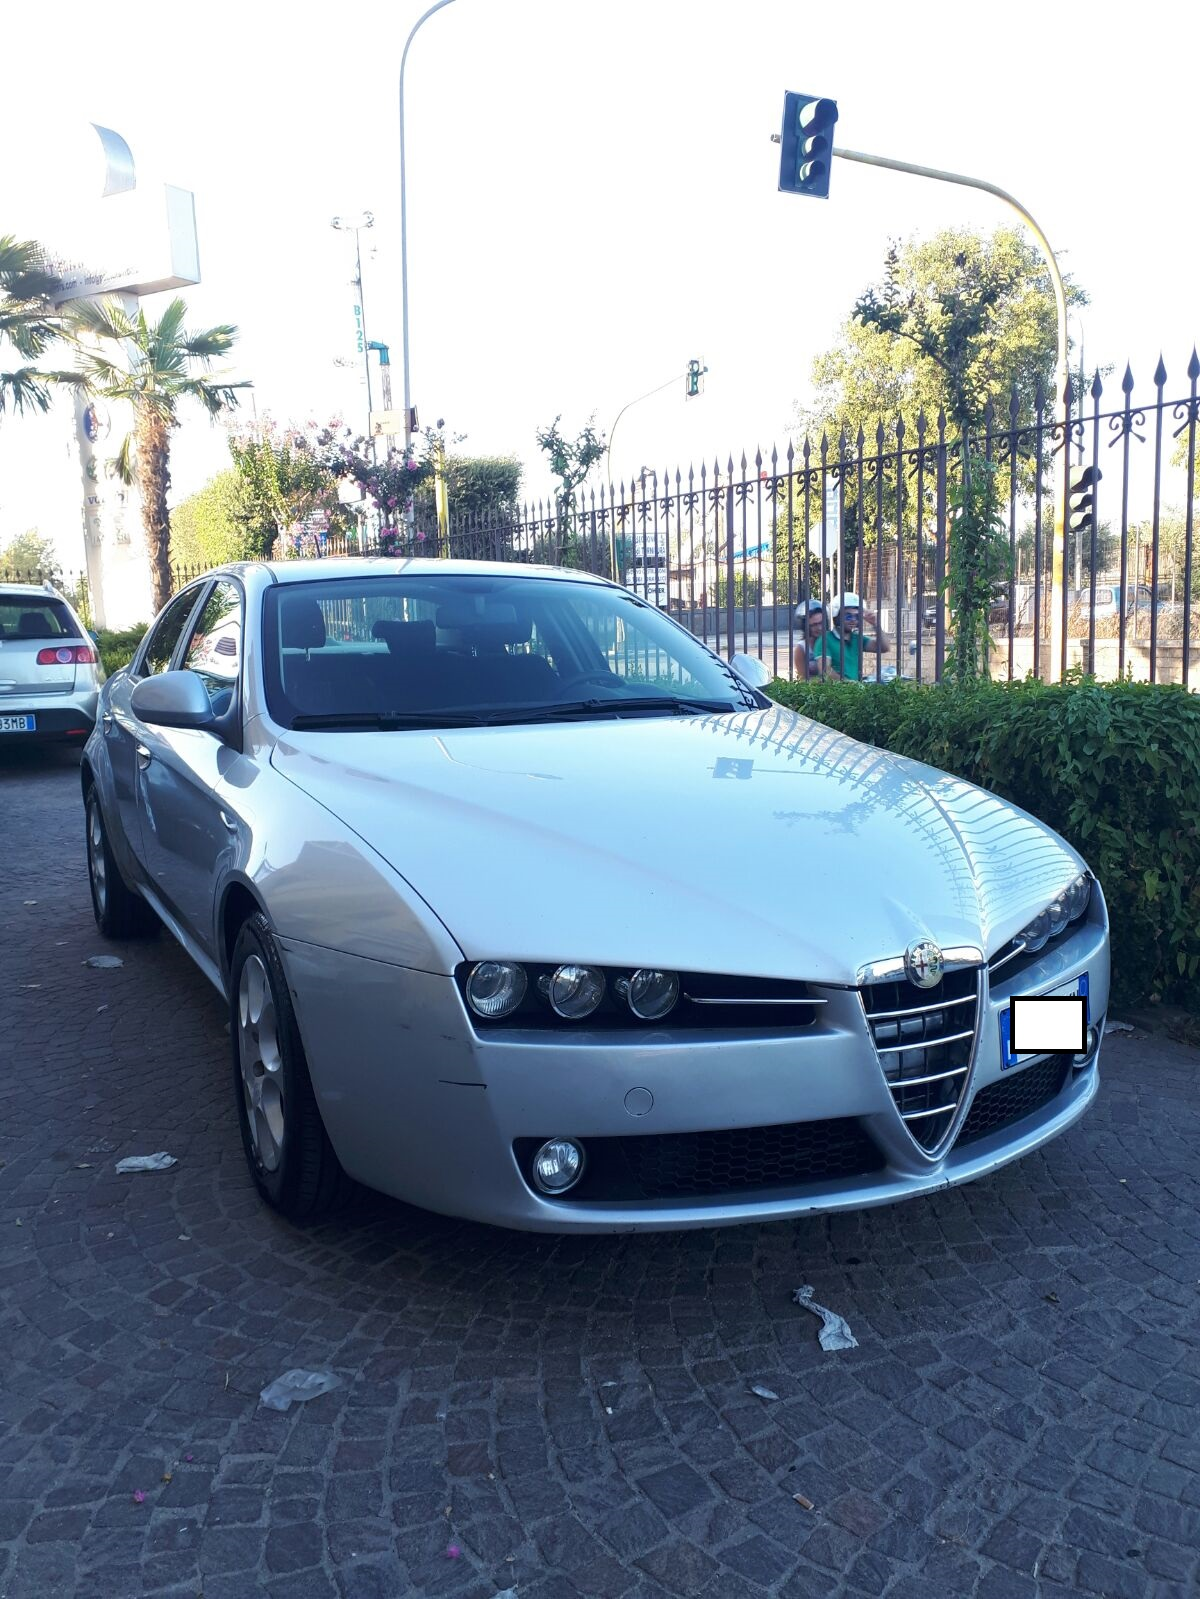 2006 alfa romeo 159 2 0 diesel manual 1 year warra patrick automotors rh patrickautomotors it alfa romeo 159 user manual pdf alfa romeo 159 user manual